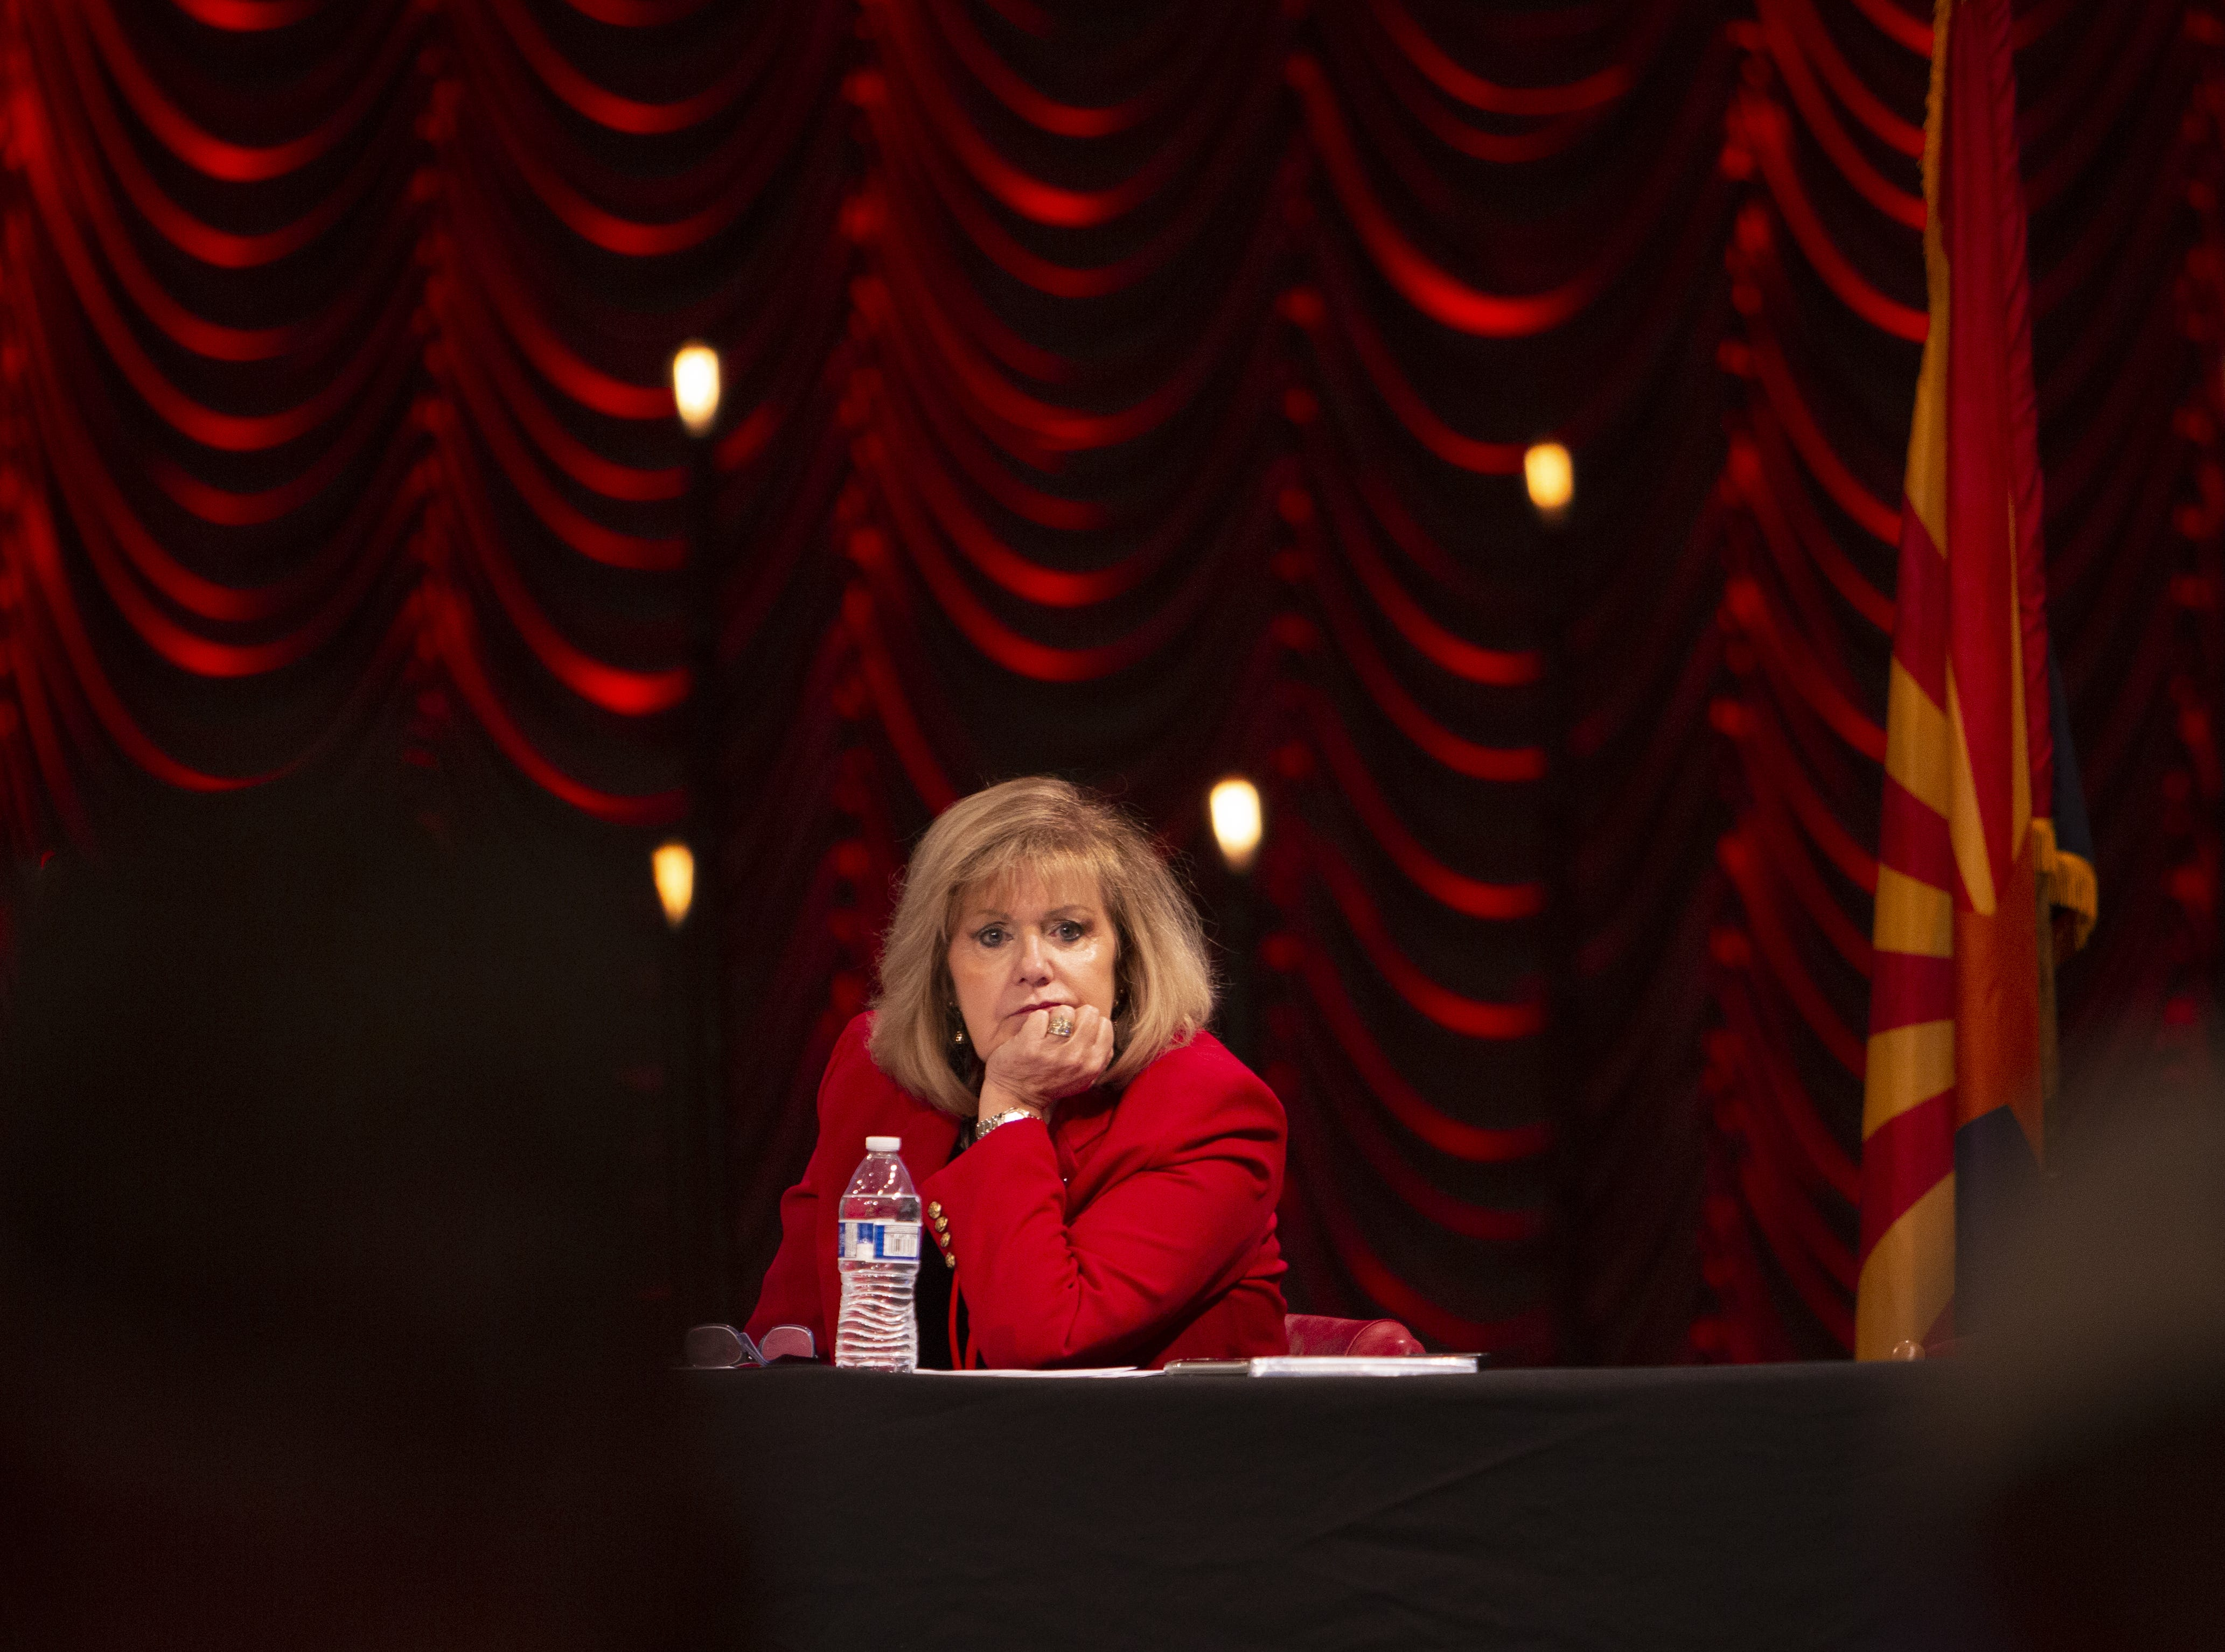 Lori Klein Corbin, the Arizona Republican National Committeewoman, listens to the Statutory Meeting of the State Committee of the Arizona Republican Party at Church for the Nations on Saturday, Jan. 26, 2019.